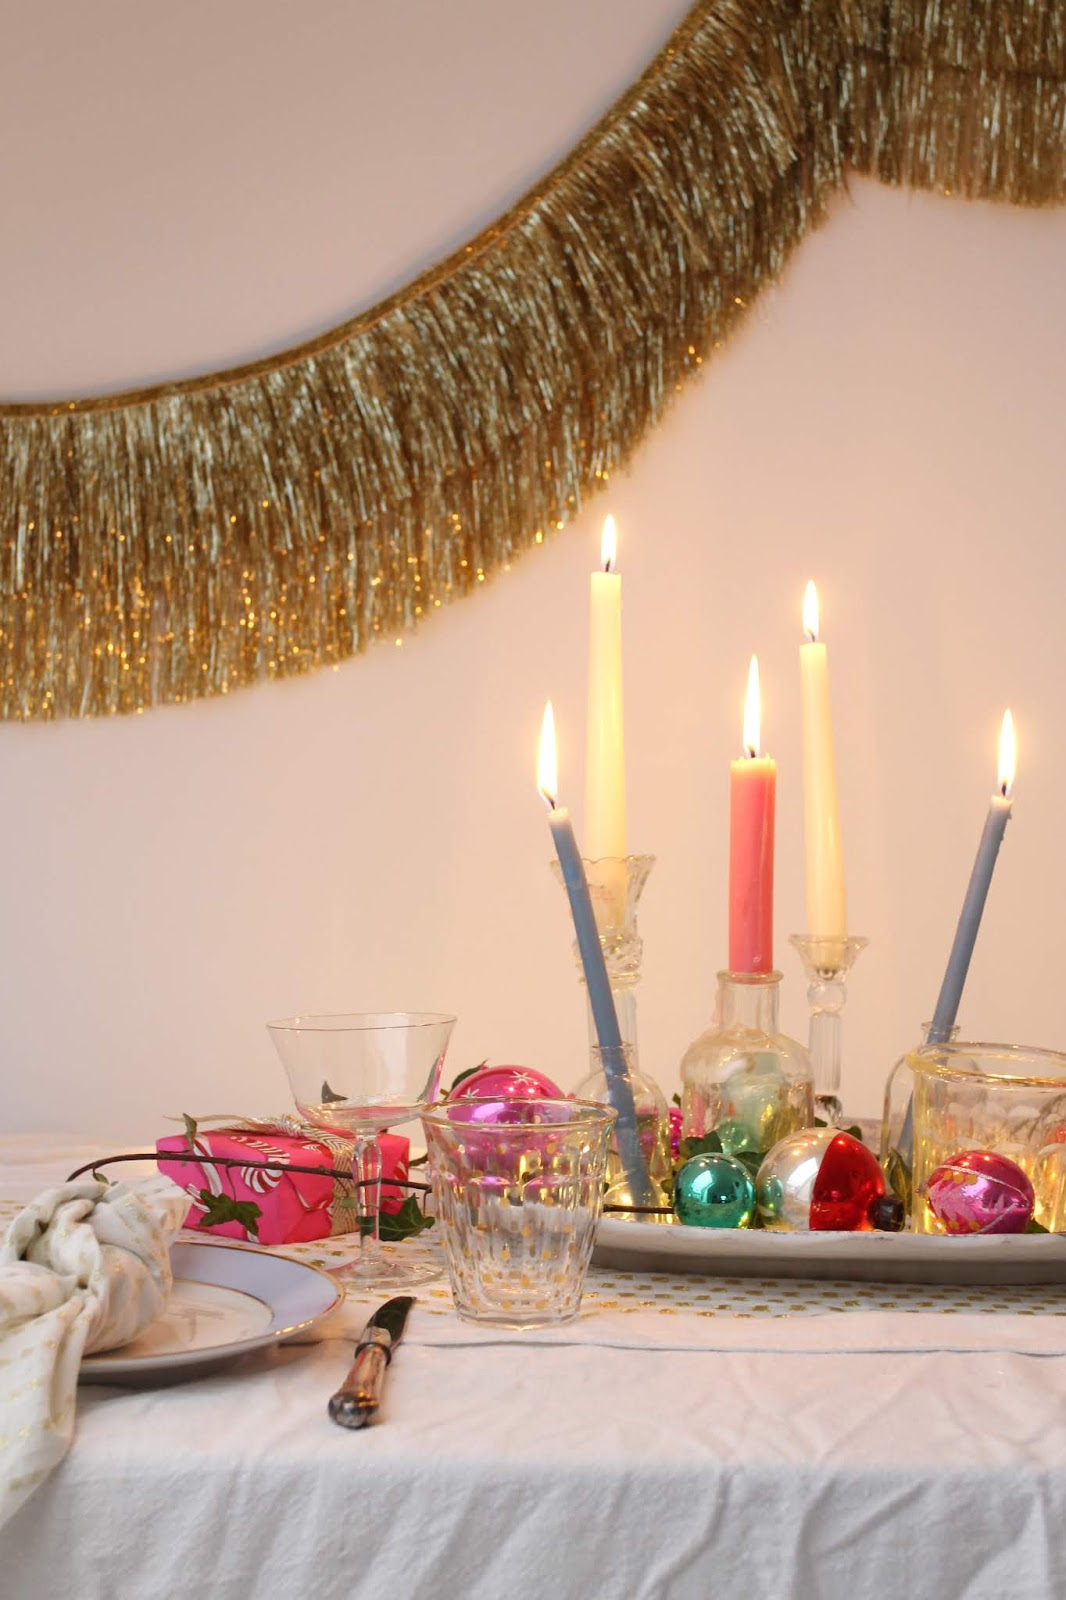 Candle plates and Colourful, vintage Christmas table inspiration